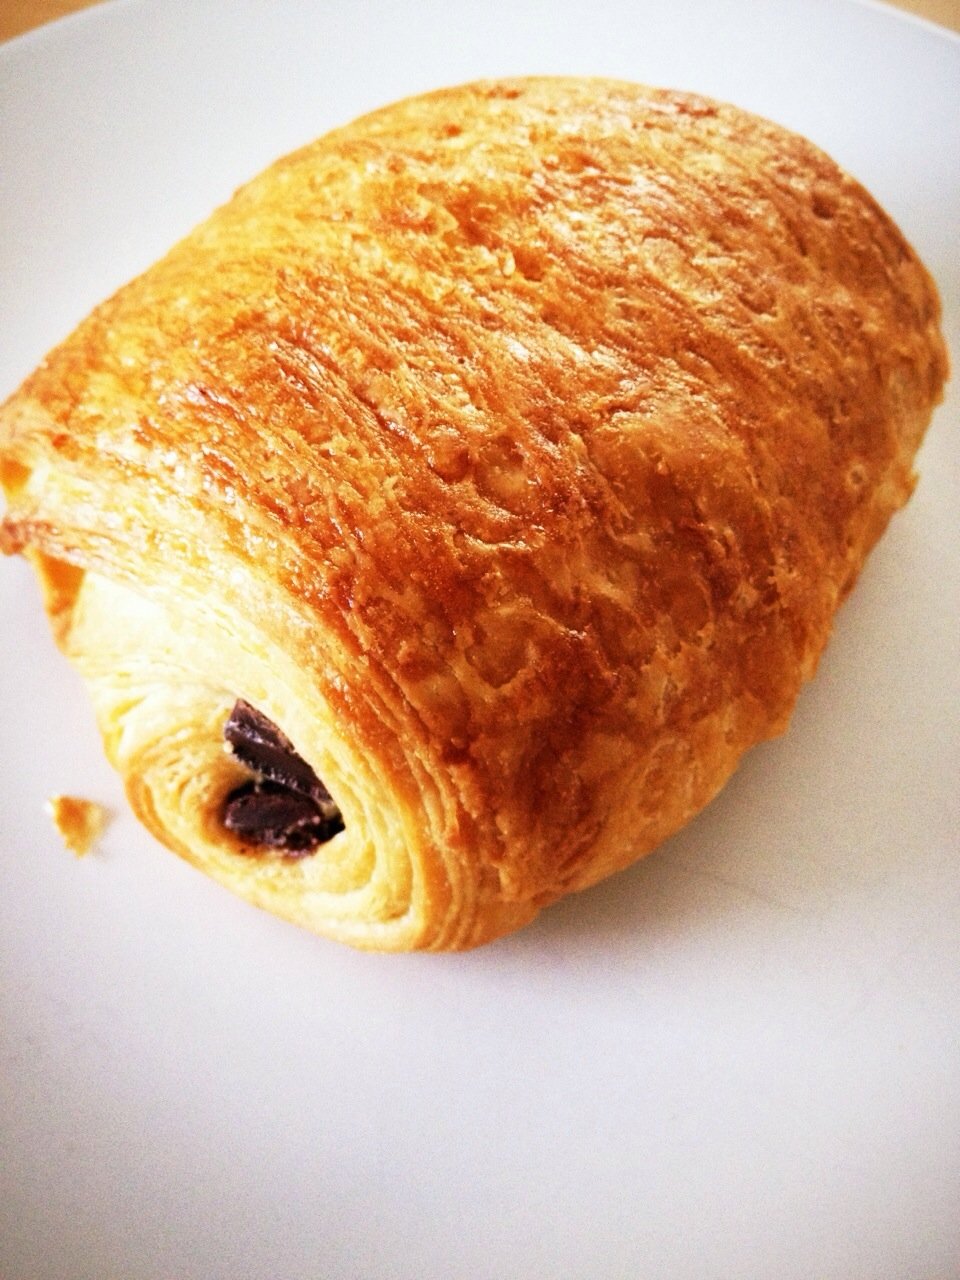 File:Pain au chocolat from French Made Baking.jpg - Wikimedia Commons